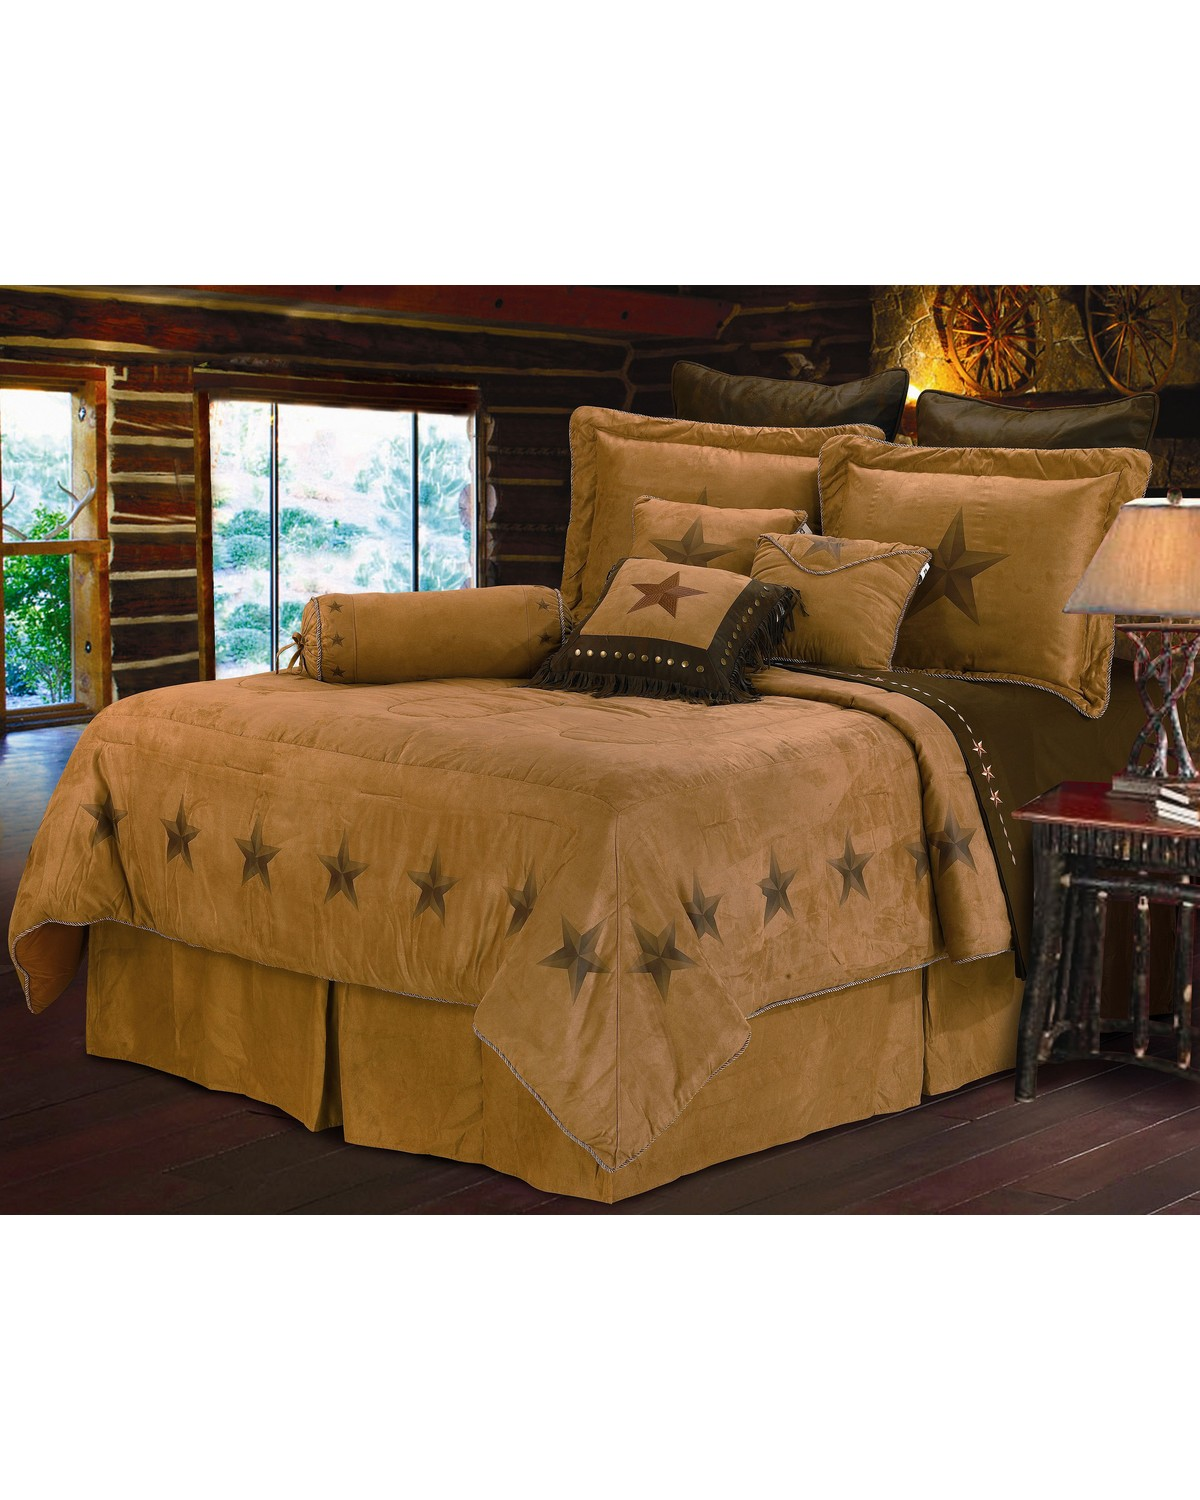 hiend accents luxury star king size bedding set  sheplers